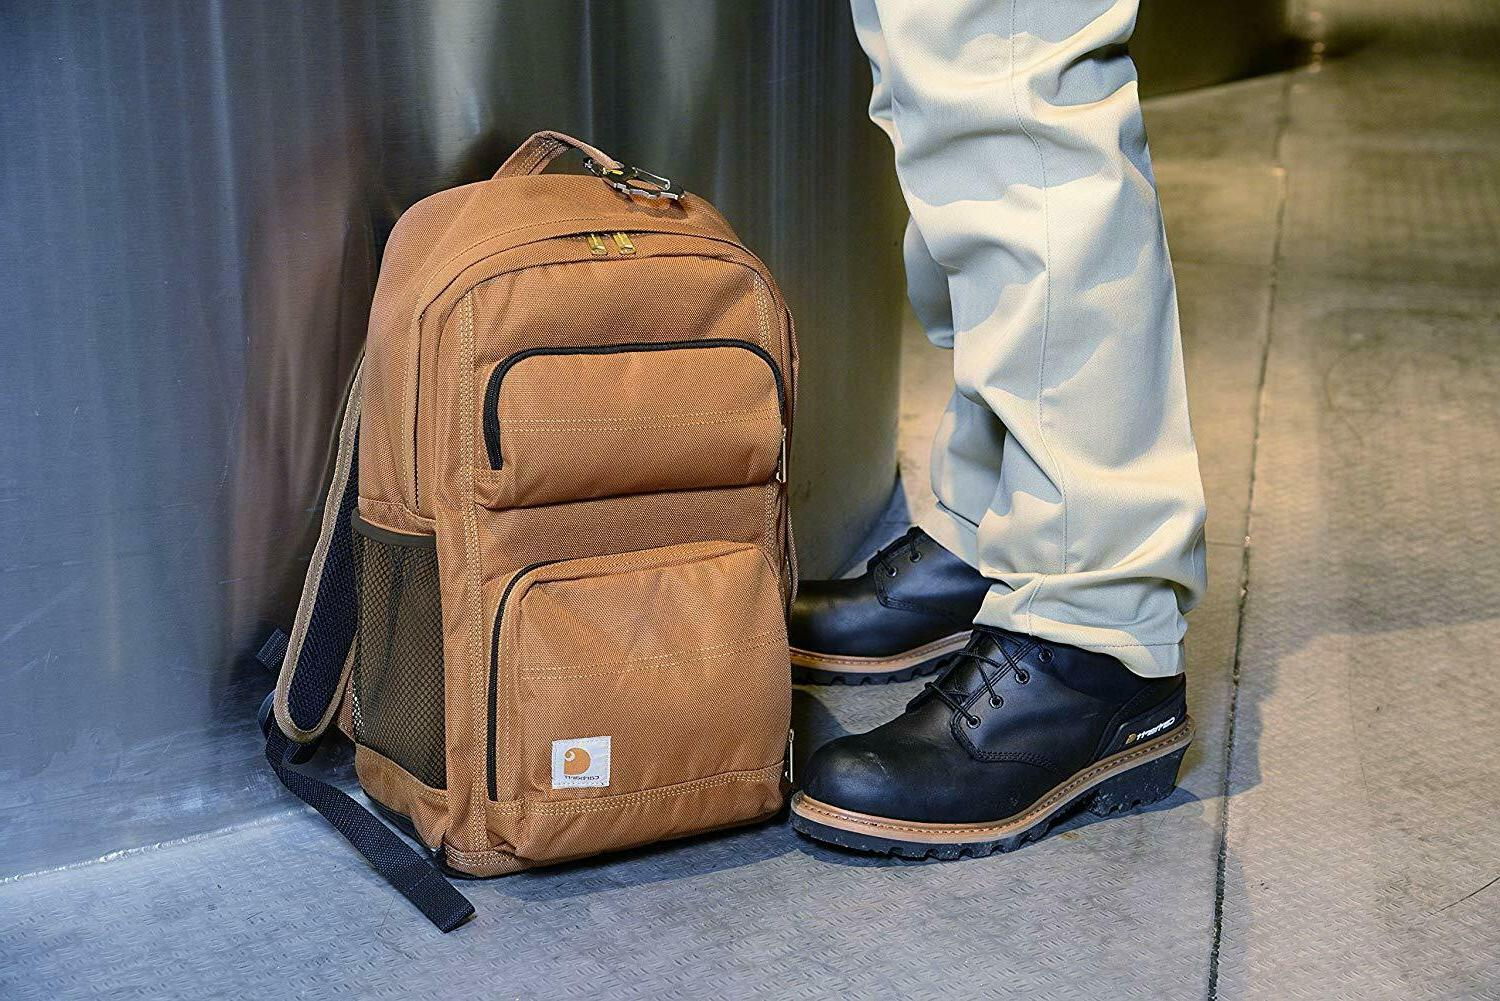 Carhartt Work Backpack with Padded Sleeve